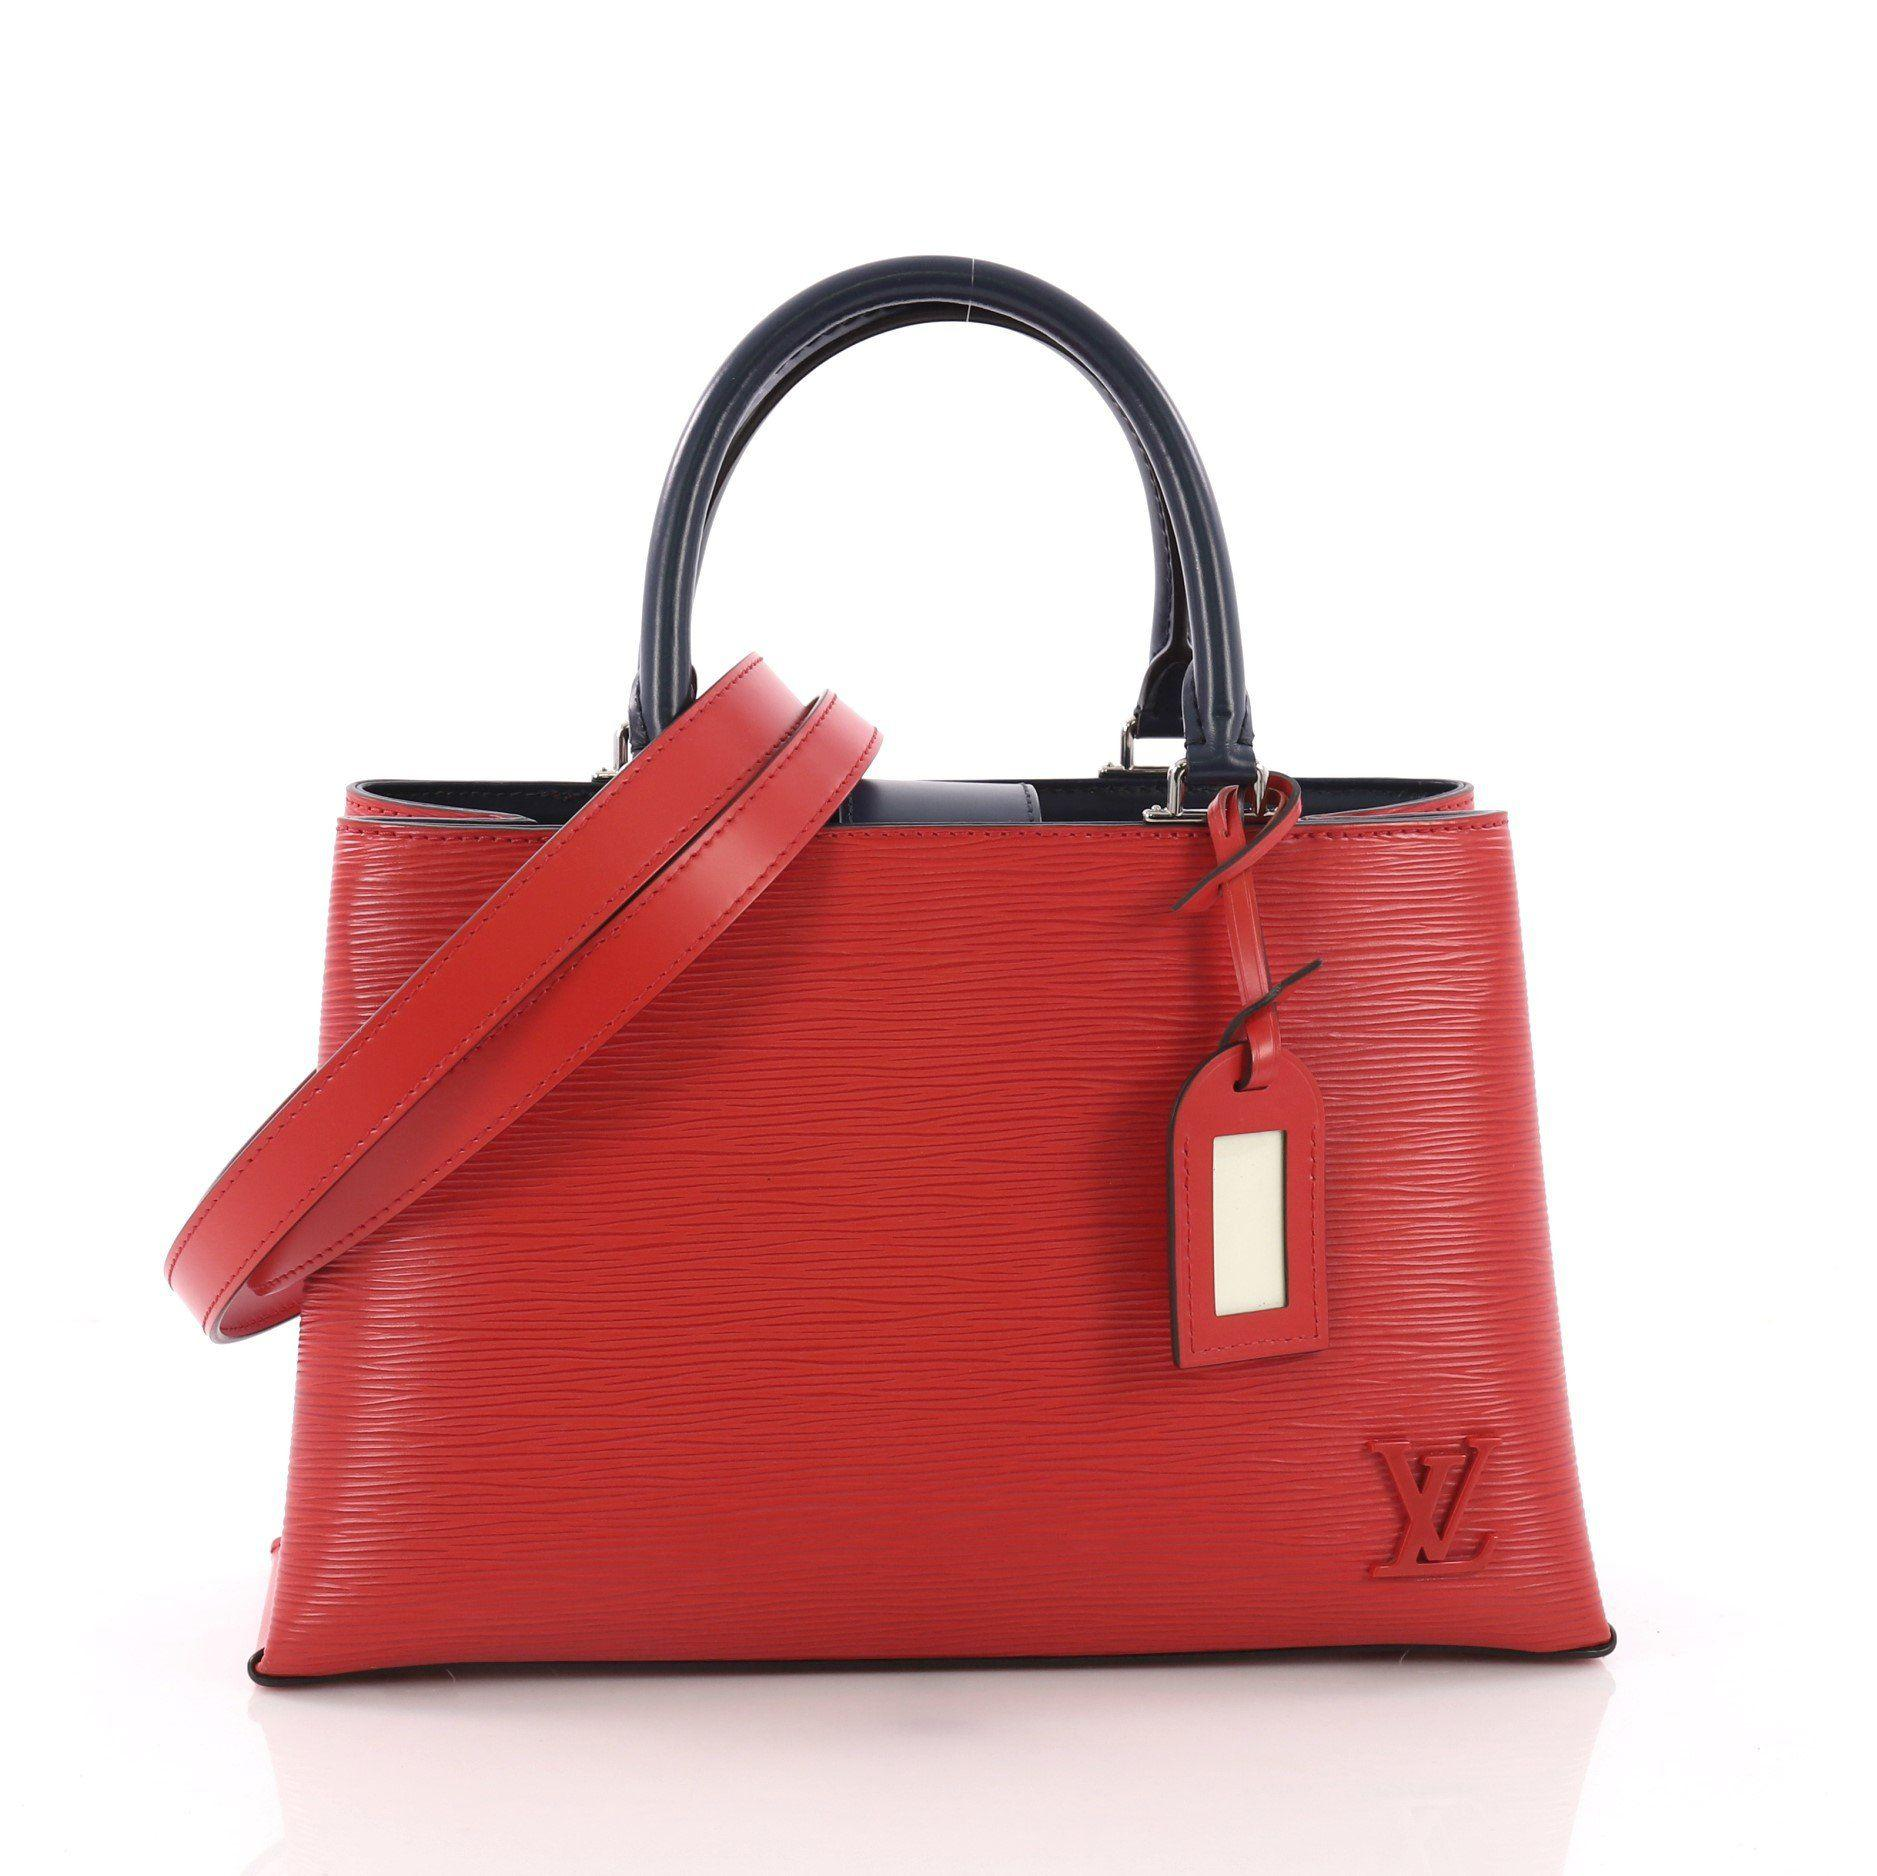 057d5c9c9f30 Lyst - Louis Vuitton Pre Owned Kleber Handbag Epi Leather Pm in Red